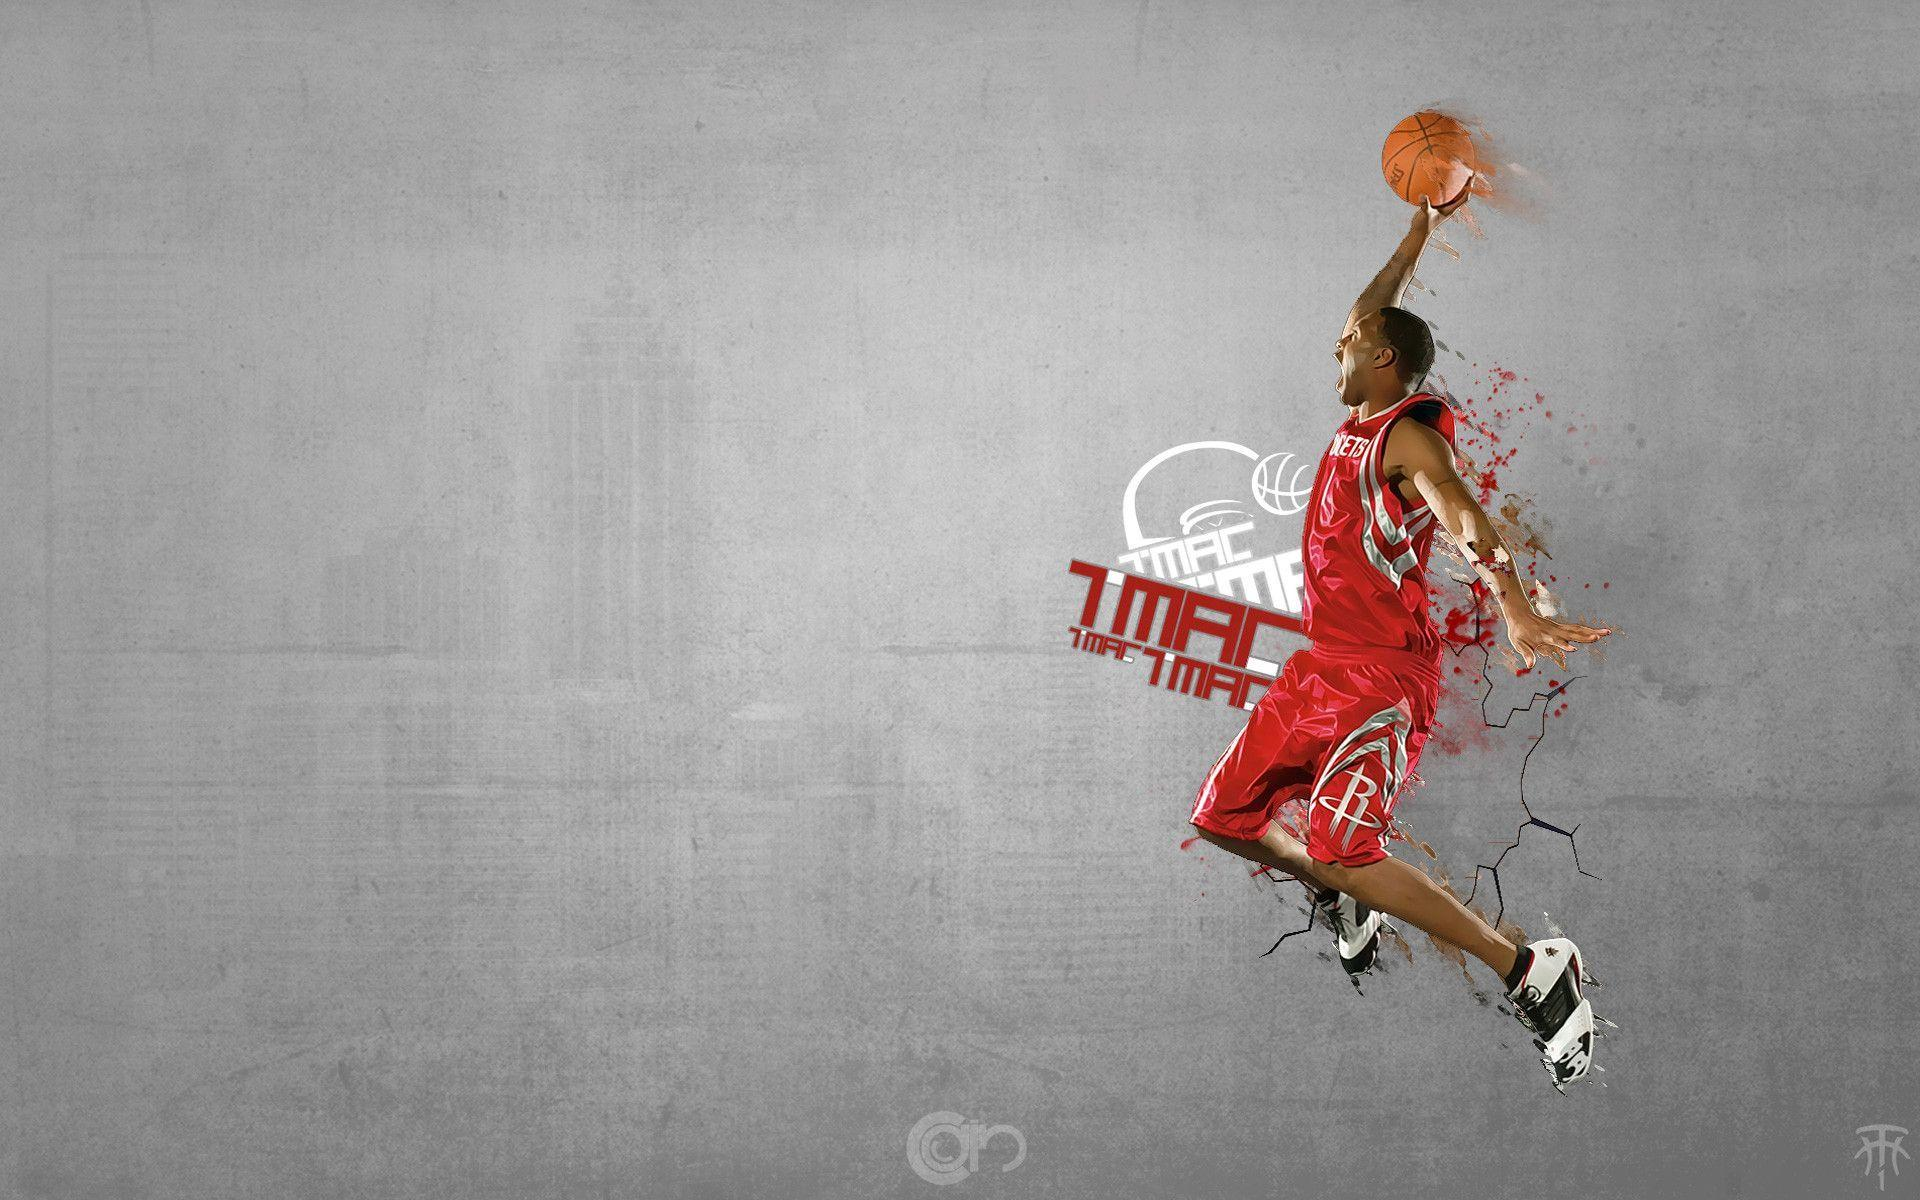 tracy mcgrady wallpaper desktop - photo #19